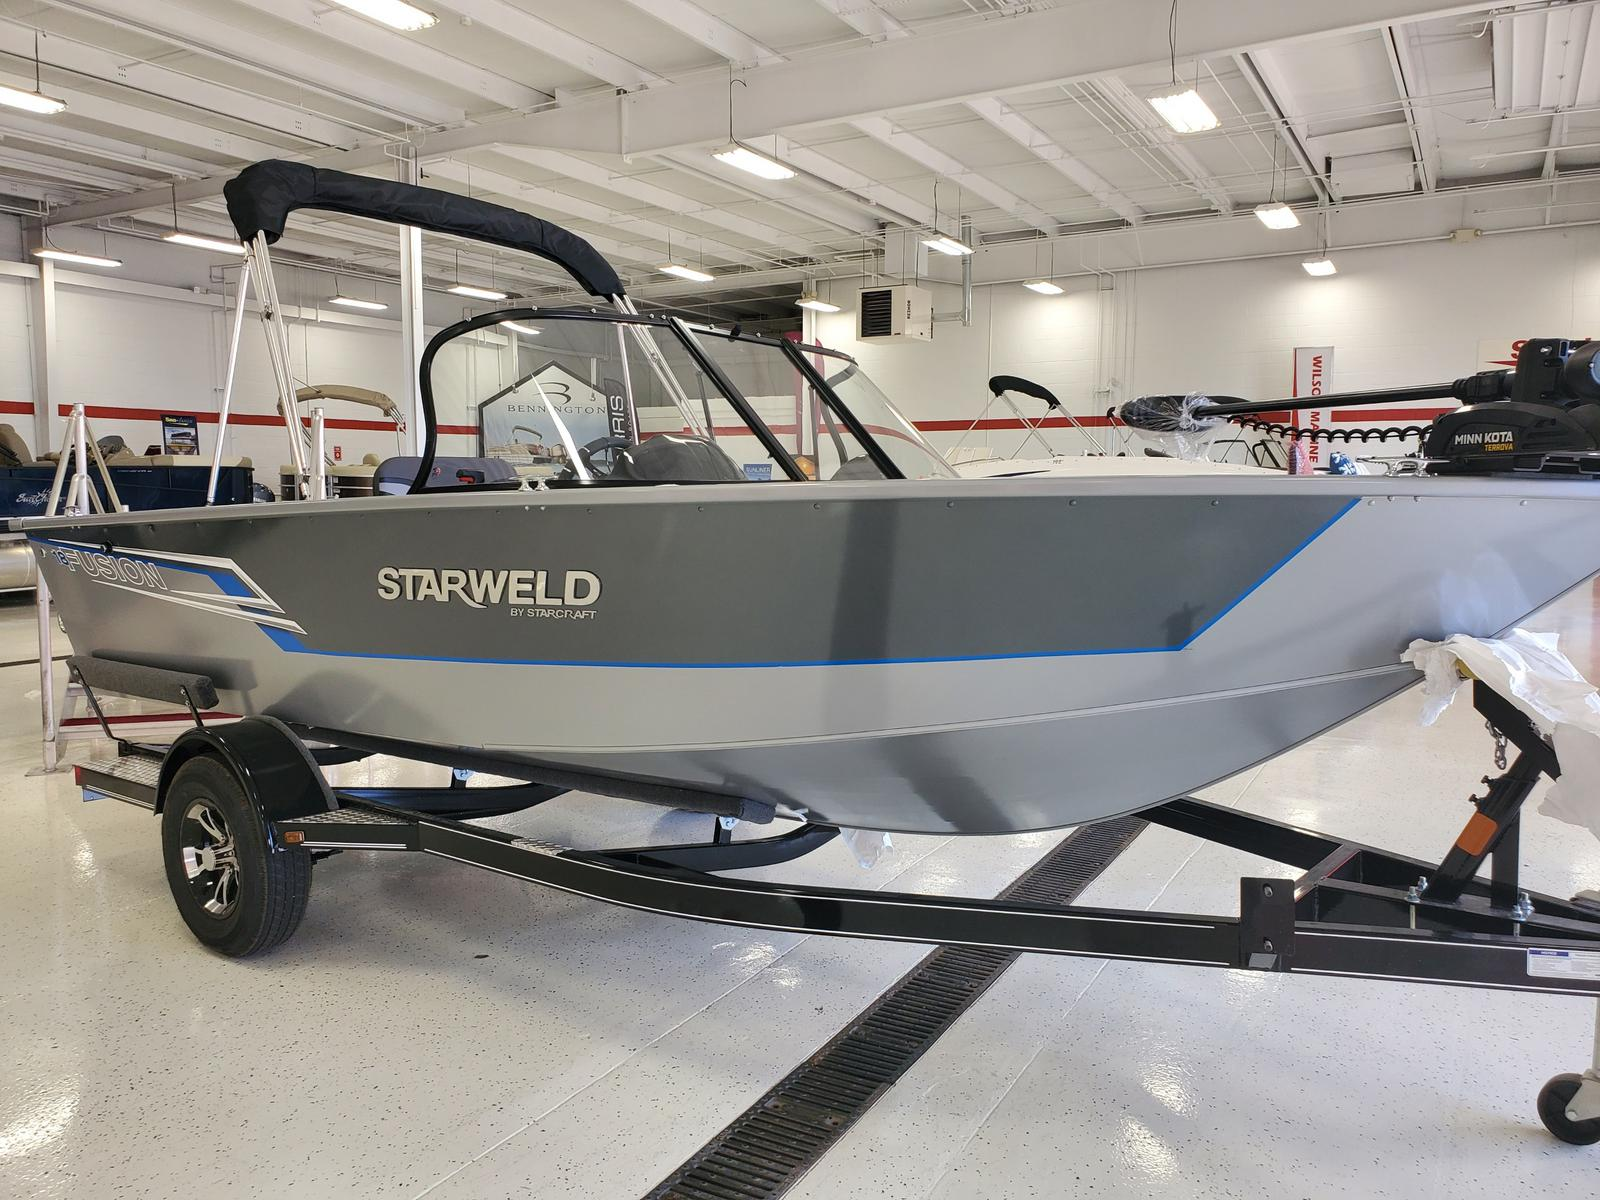 2021 Starweld boat for sale, model of the boat is Fusion 18 DC & Image # 1 of 11